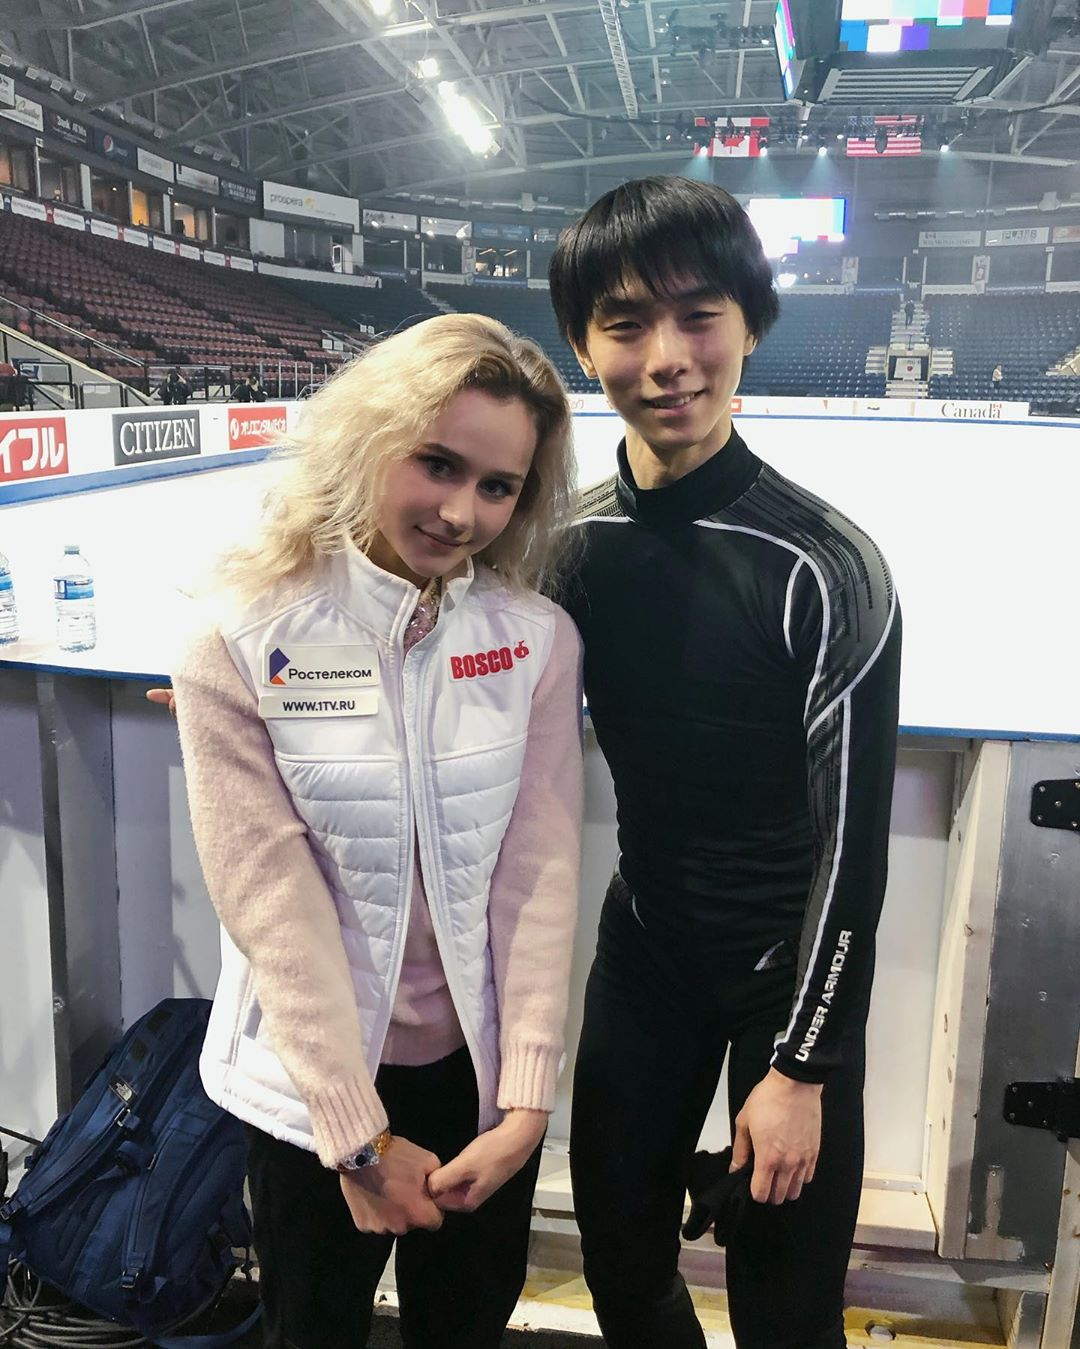 GP - 2 этап. Skate Canada International Kelowna, BC / CAN October 25-27, 2019 - Страница 28 EH6h9LtU4AATIN0?format=jpg&name=large